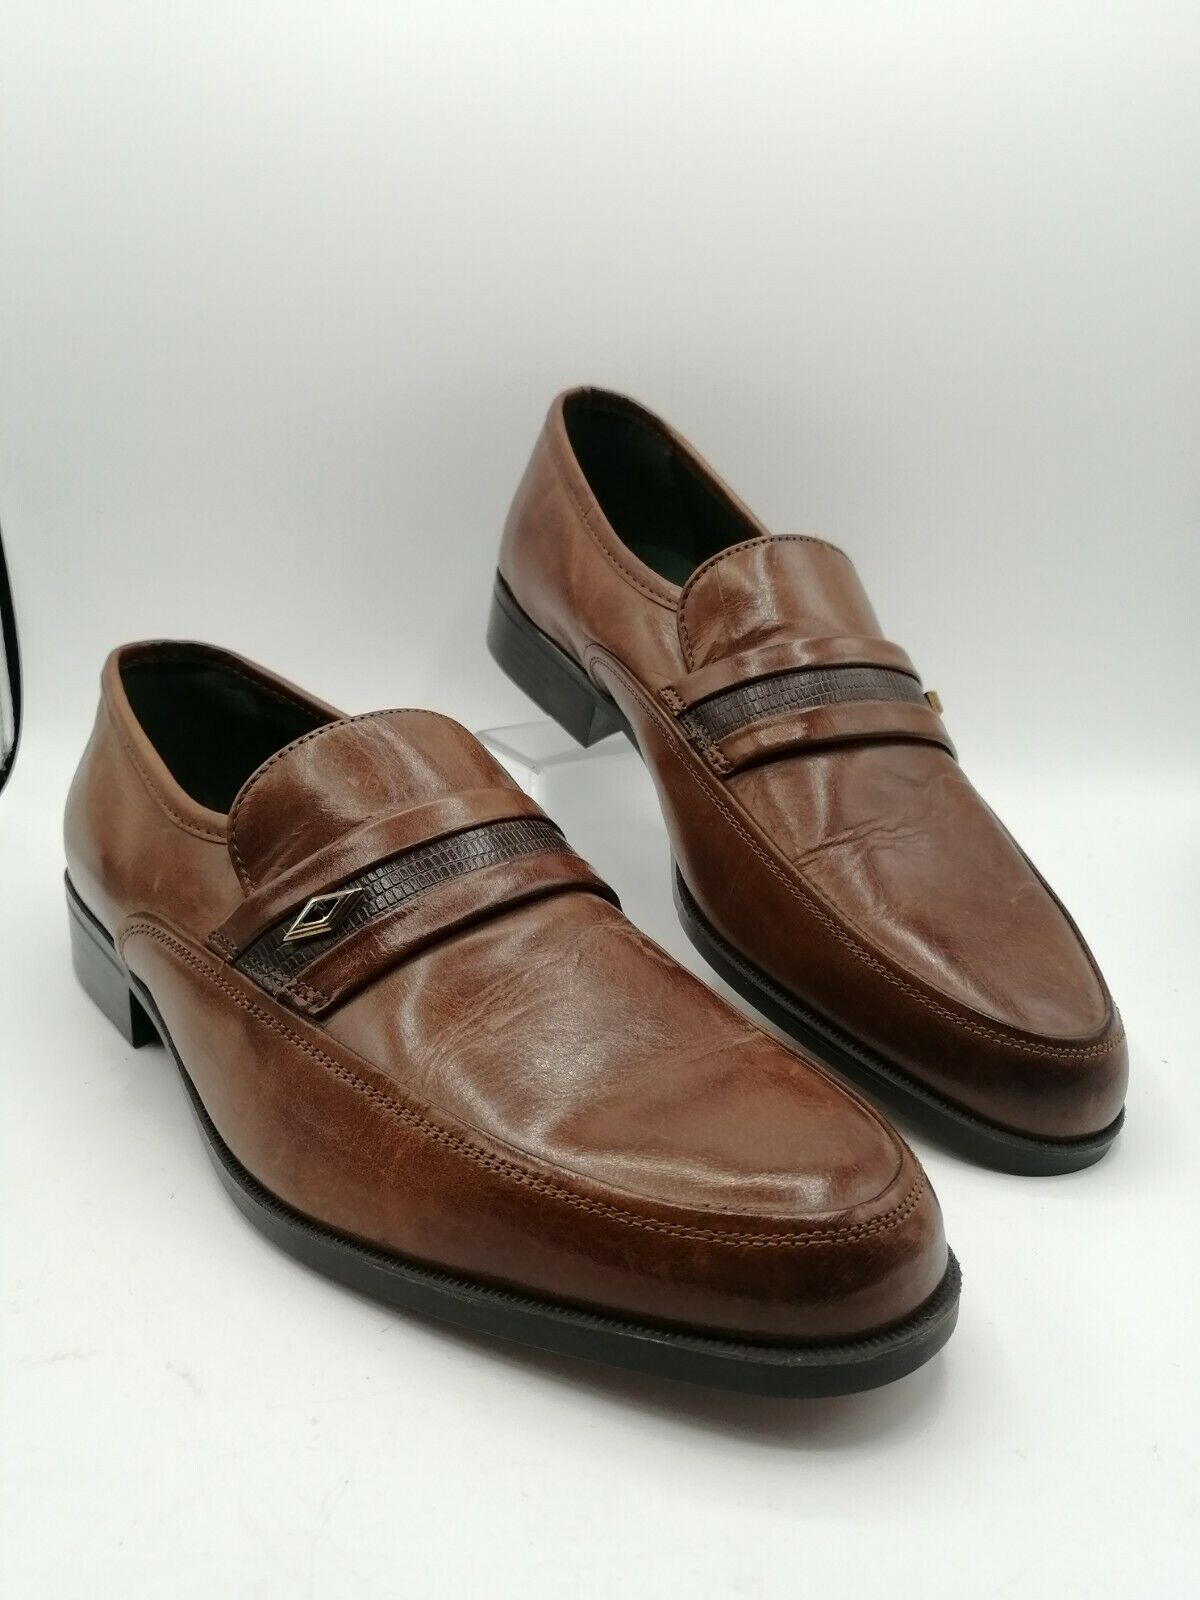 Clarks Made in Italy Brown Leather Slip on Loafers Shoes - UK 10